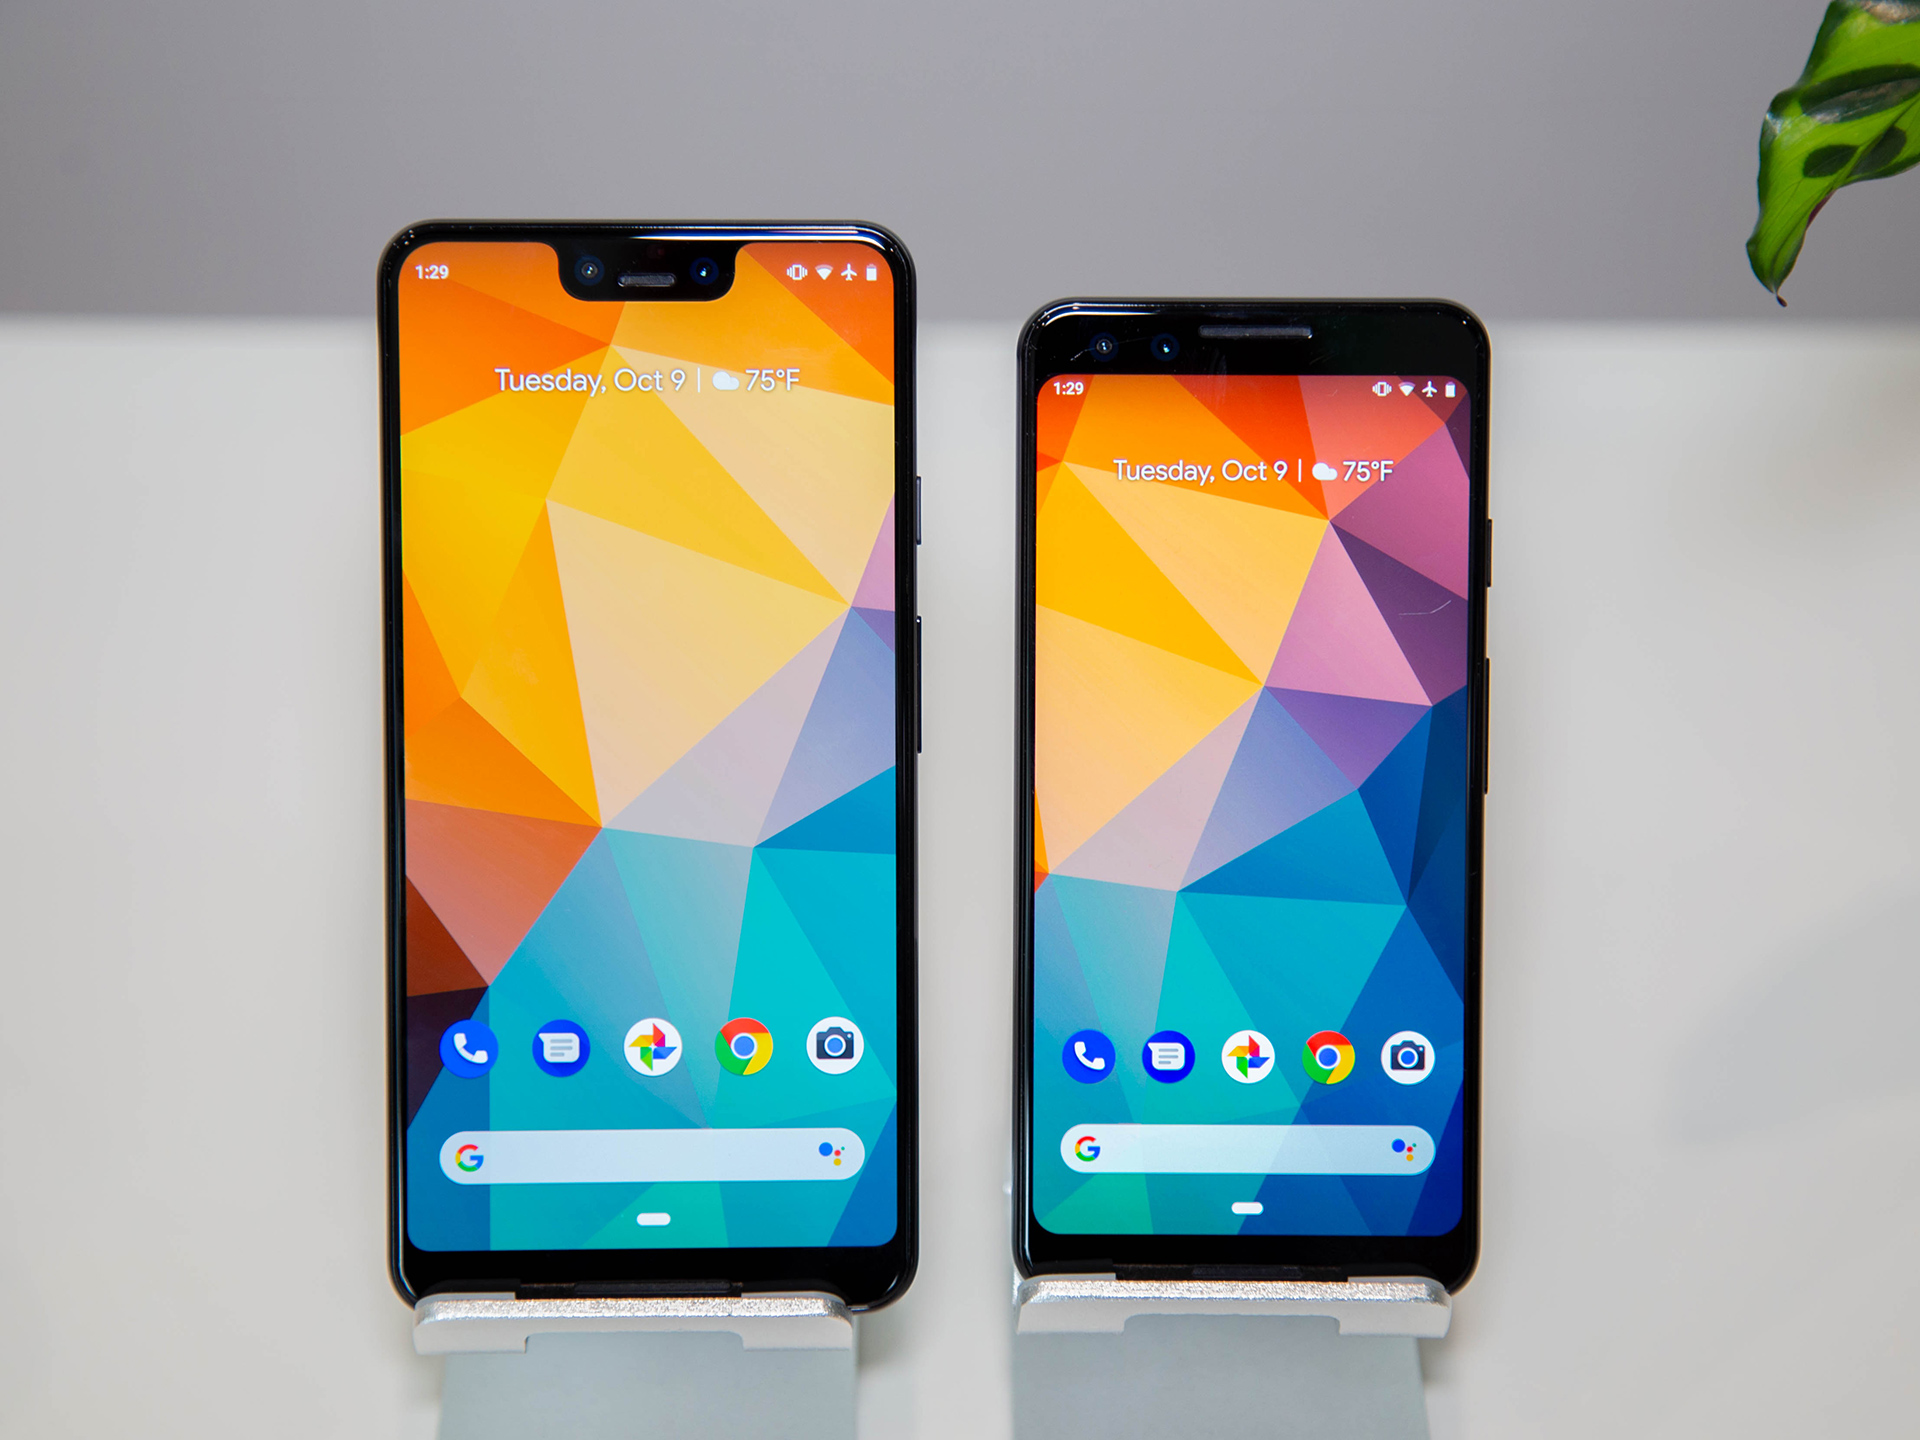 Google Pixel 3 hands-on—Not the best first impression | Ars Technica